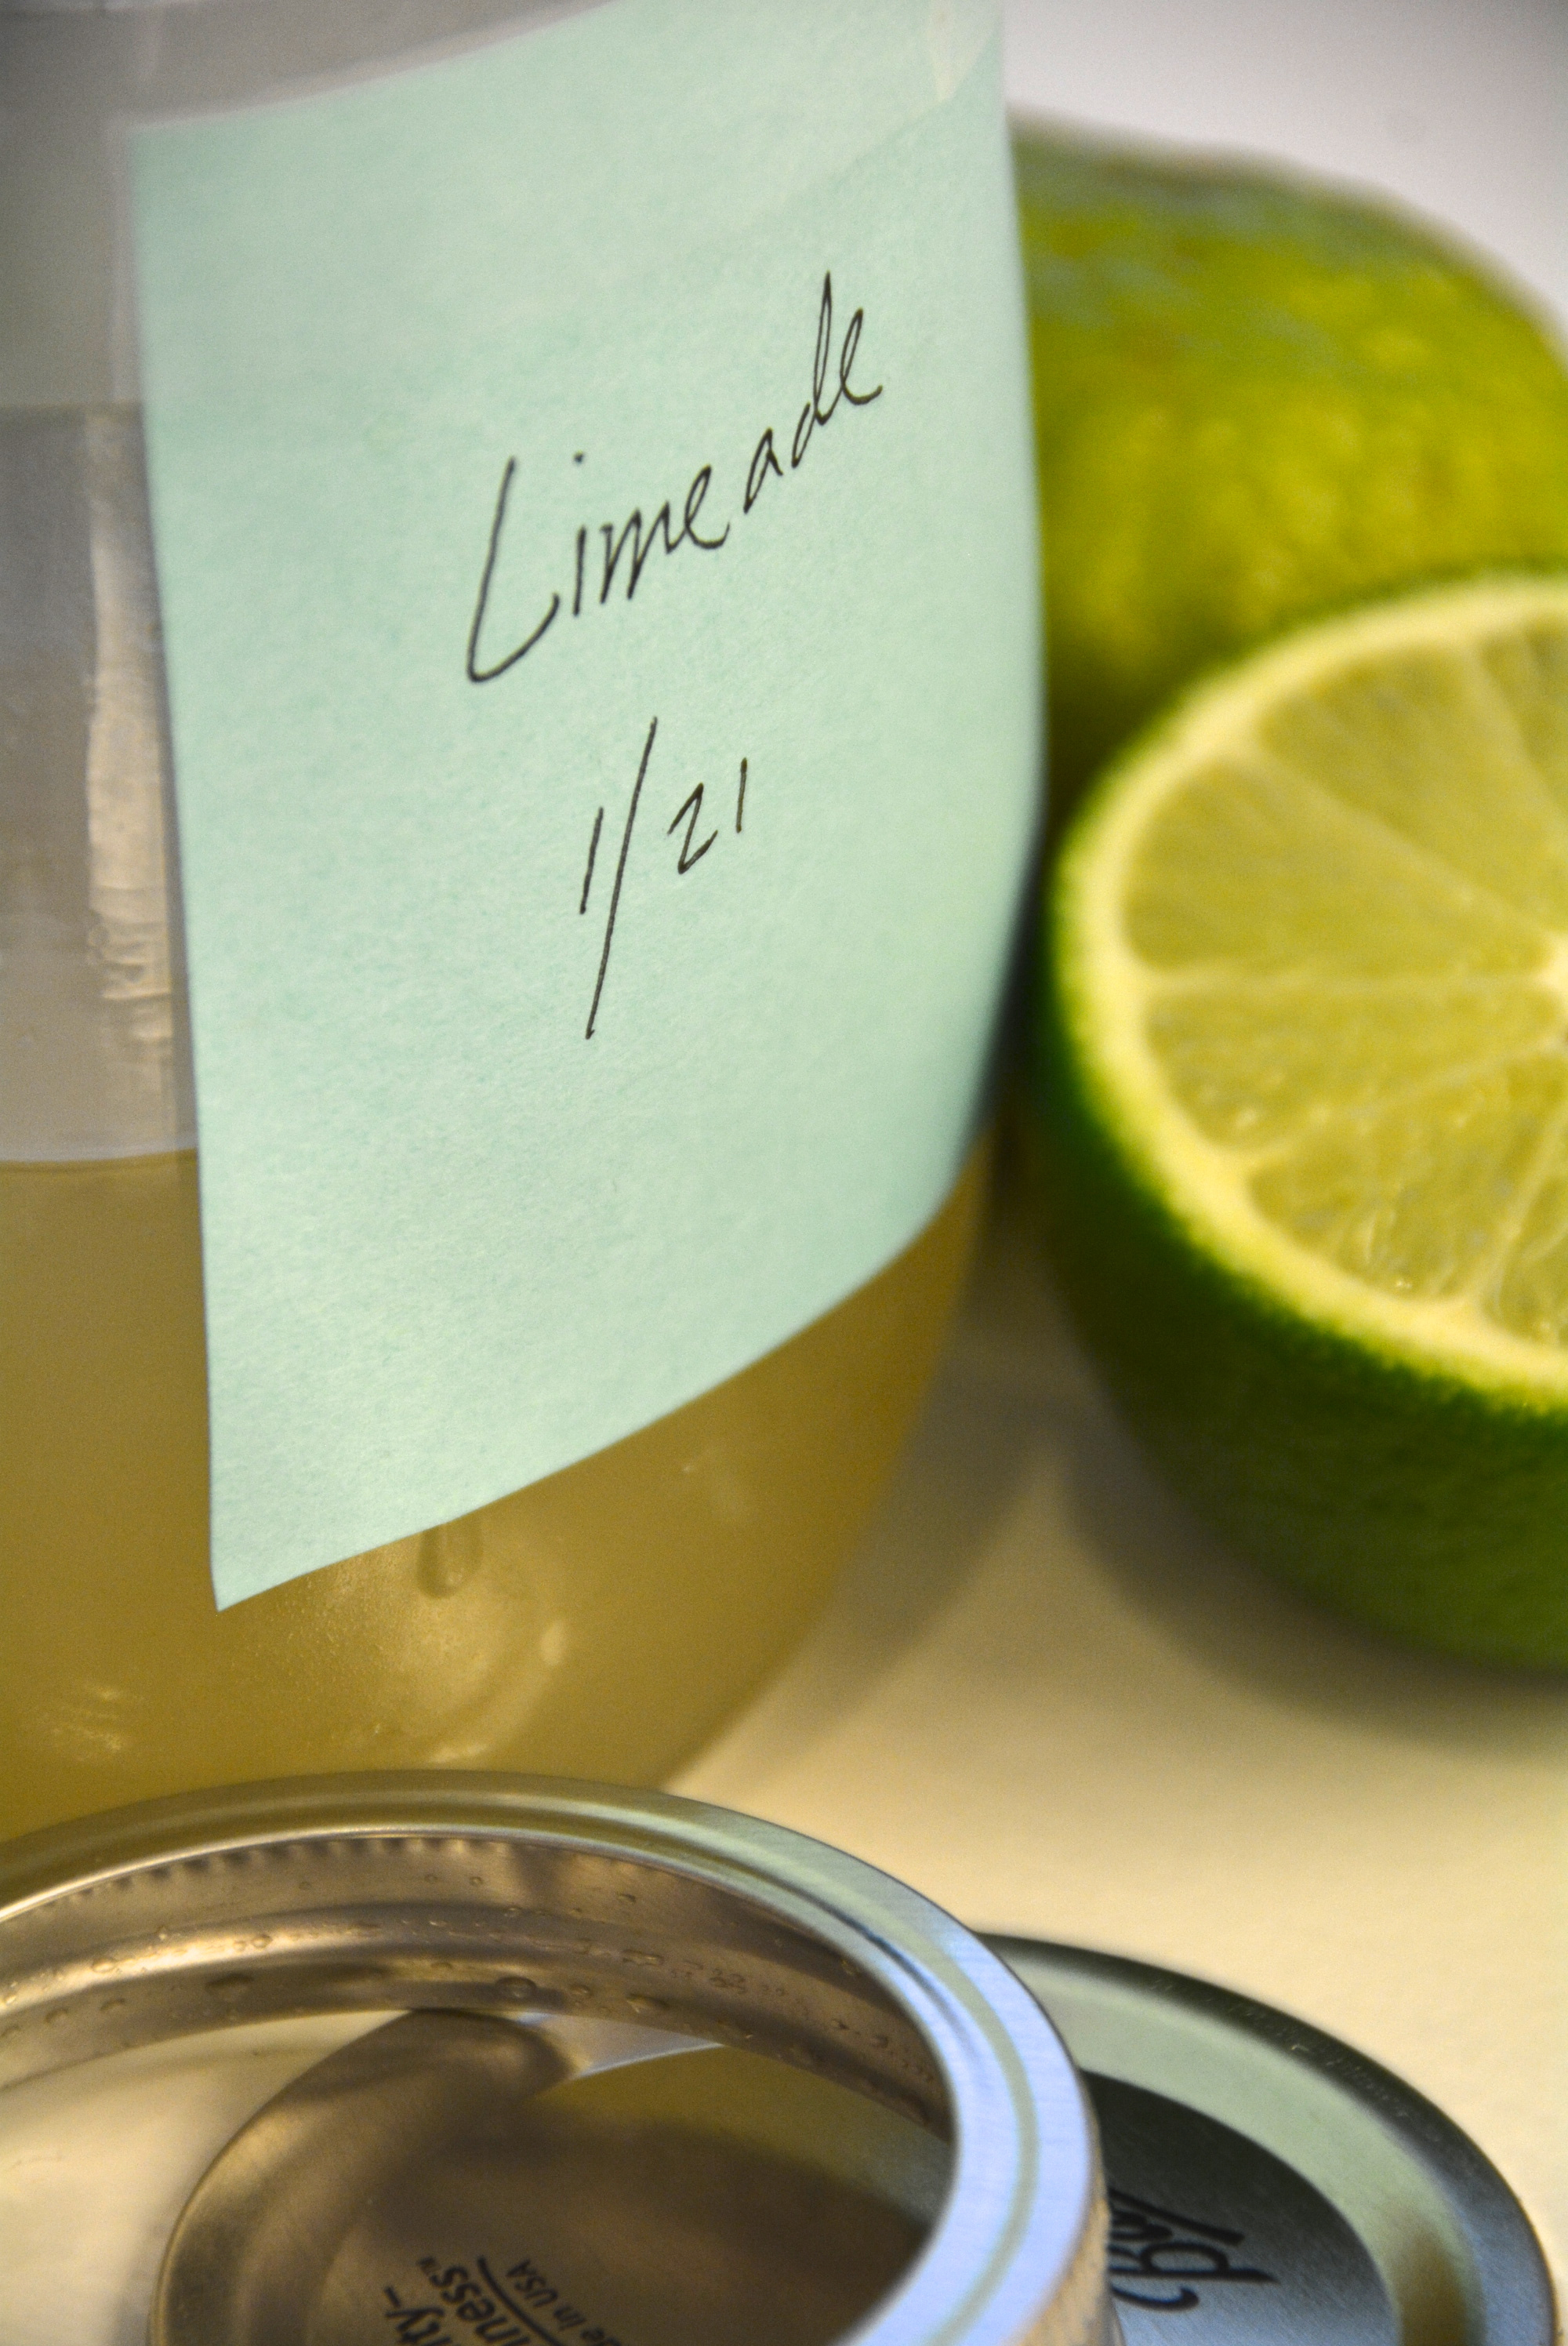 Keep the Date on Limeade